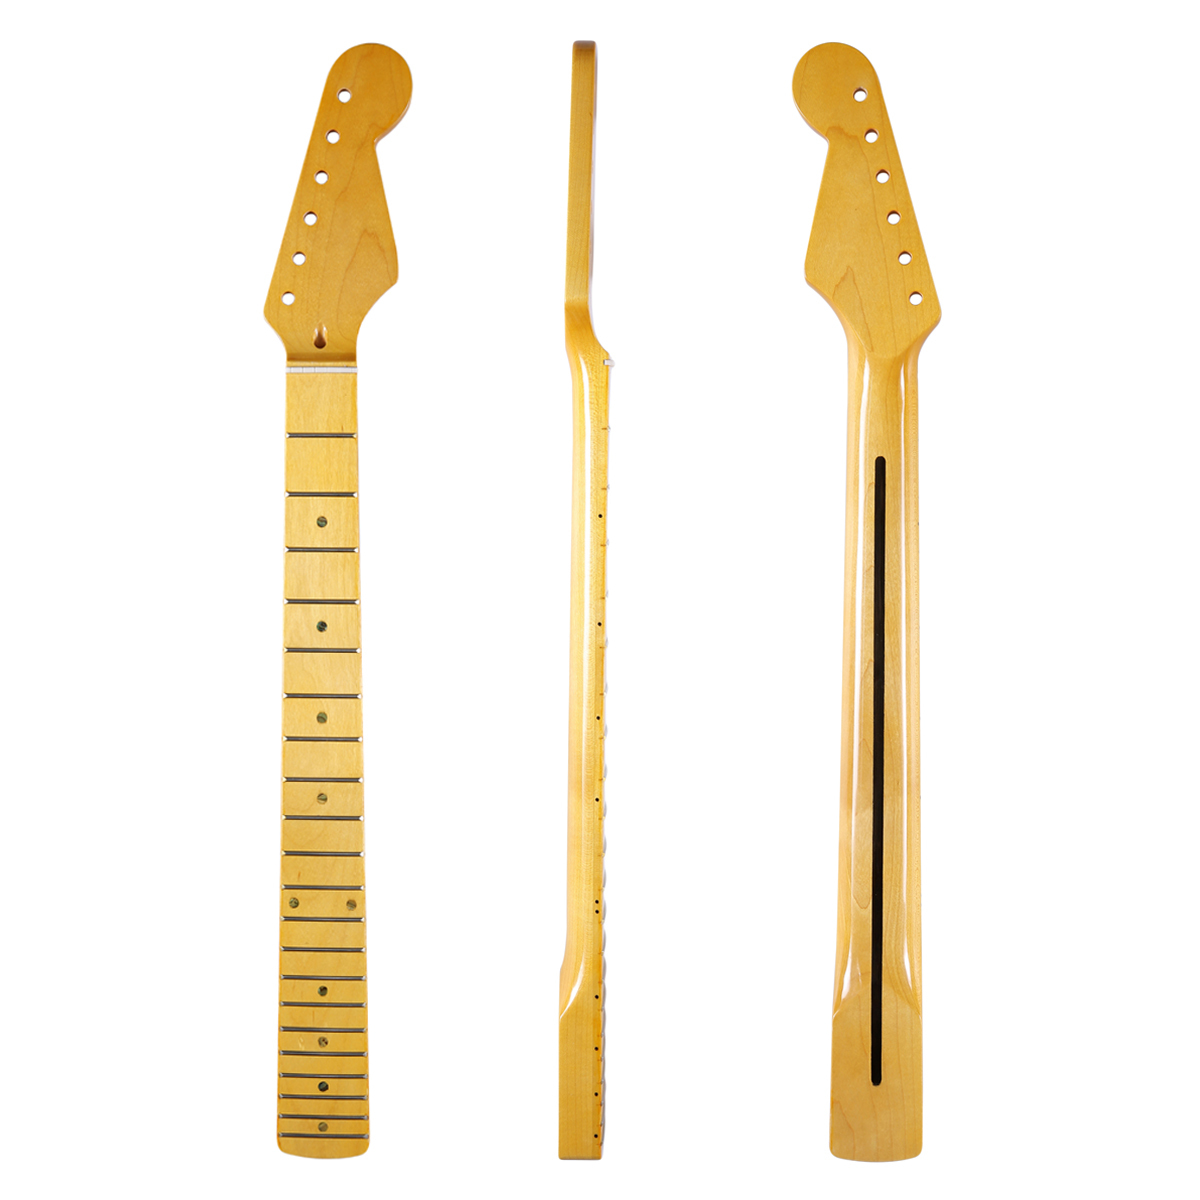 High Quality 21 Fret Glossy Canadian Maple 'U' Profile ST Strat Guitar Neck with Vintage 8mm Tuner Holes Abalone Inlay Bone Nut